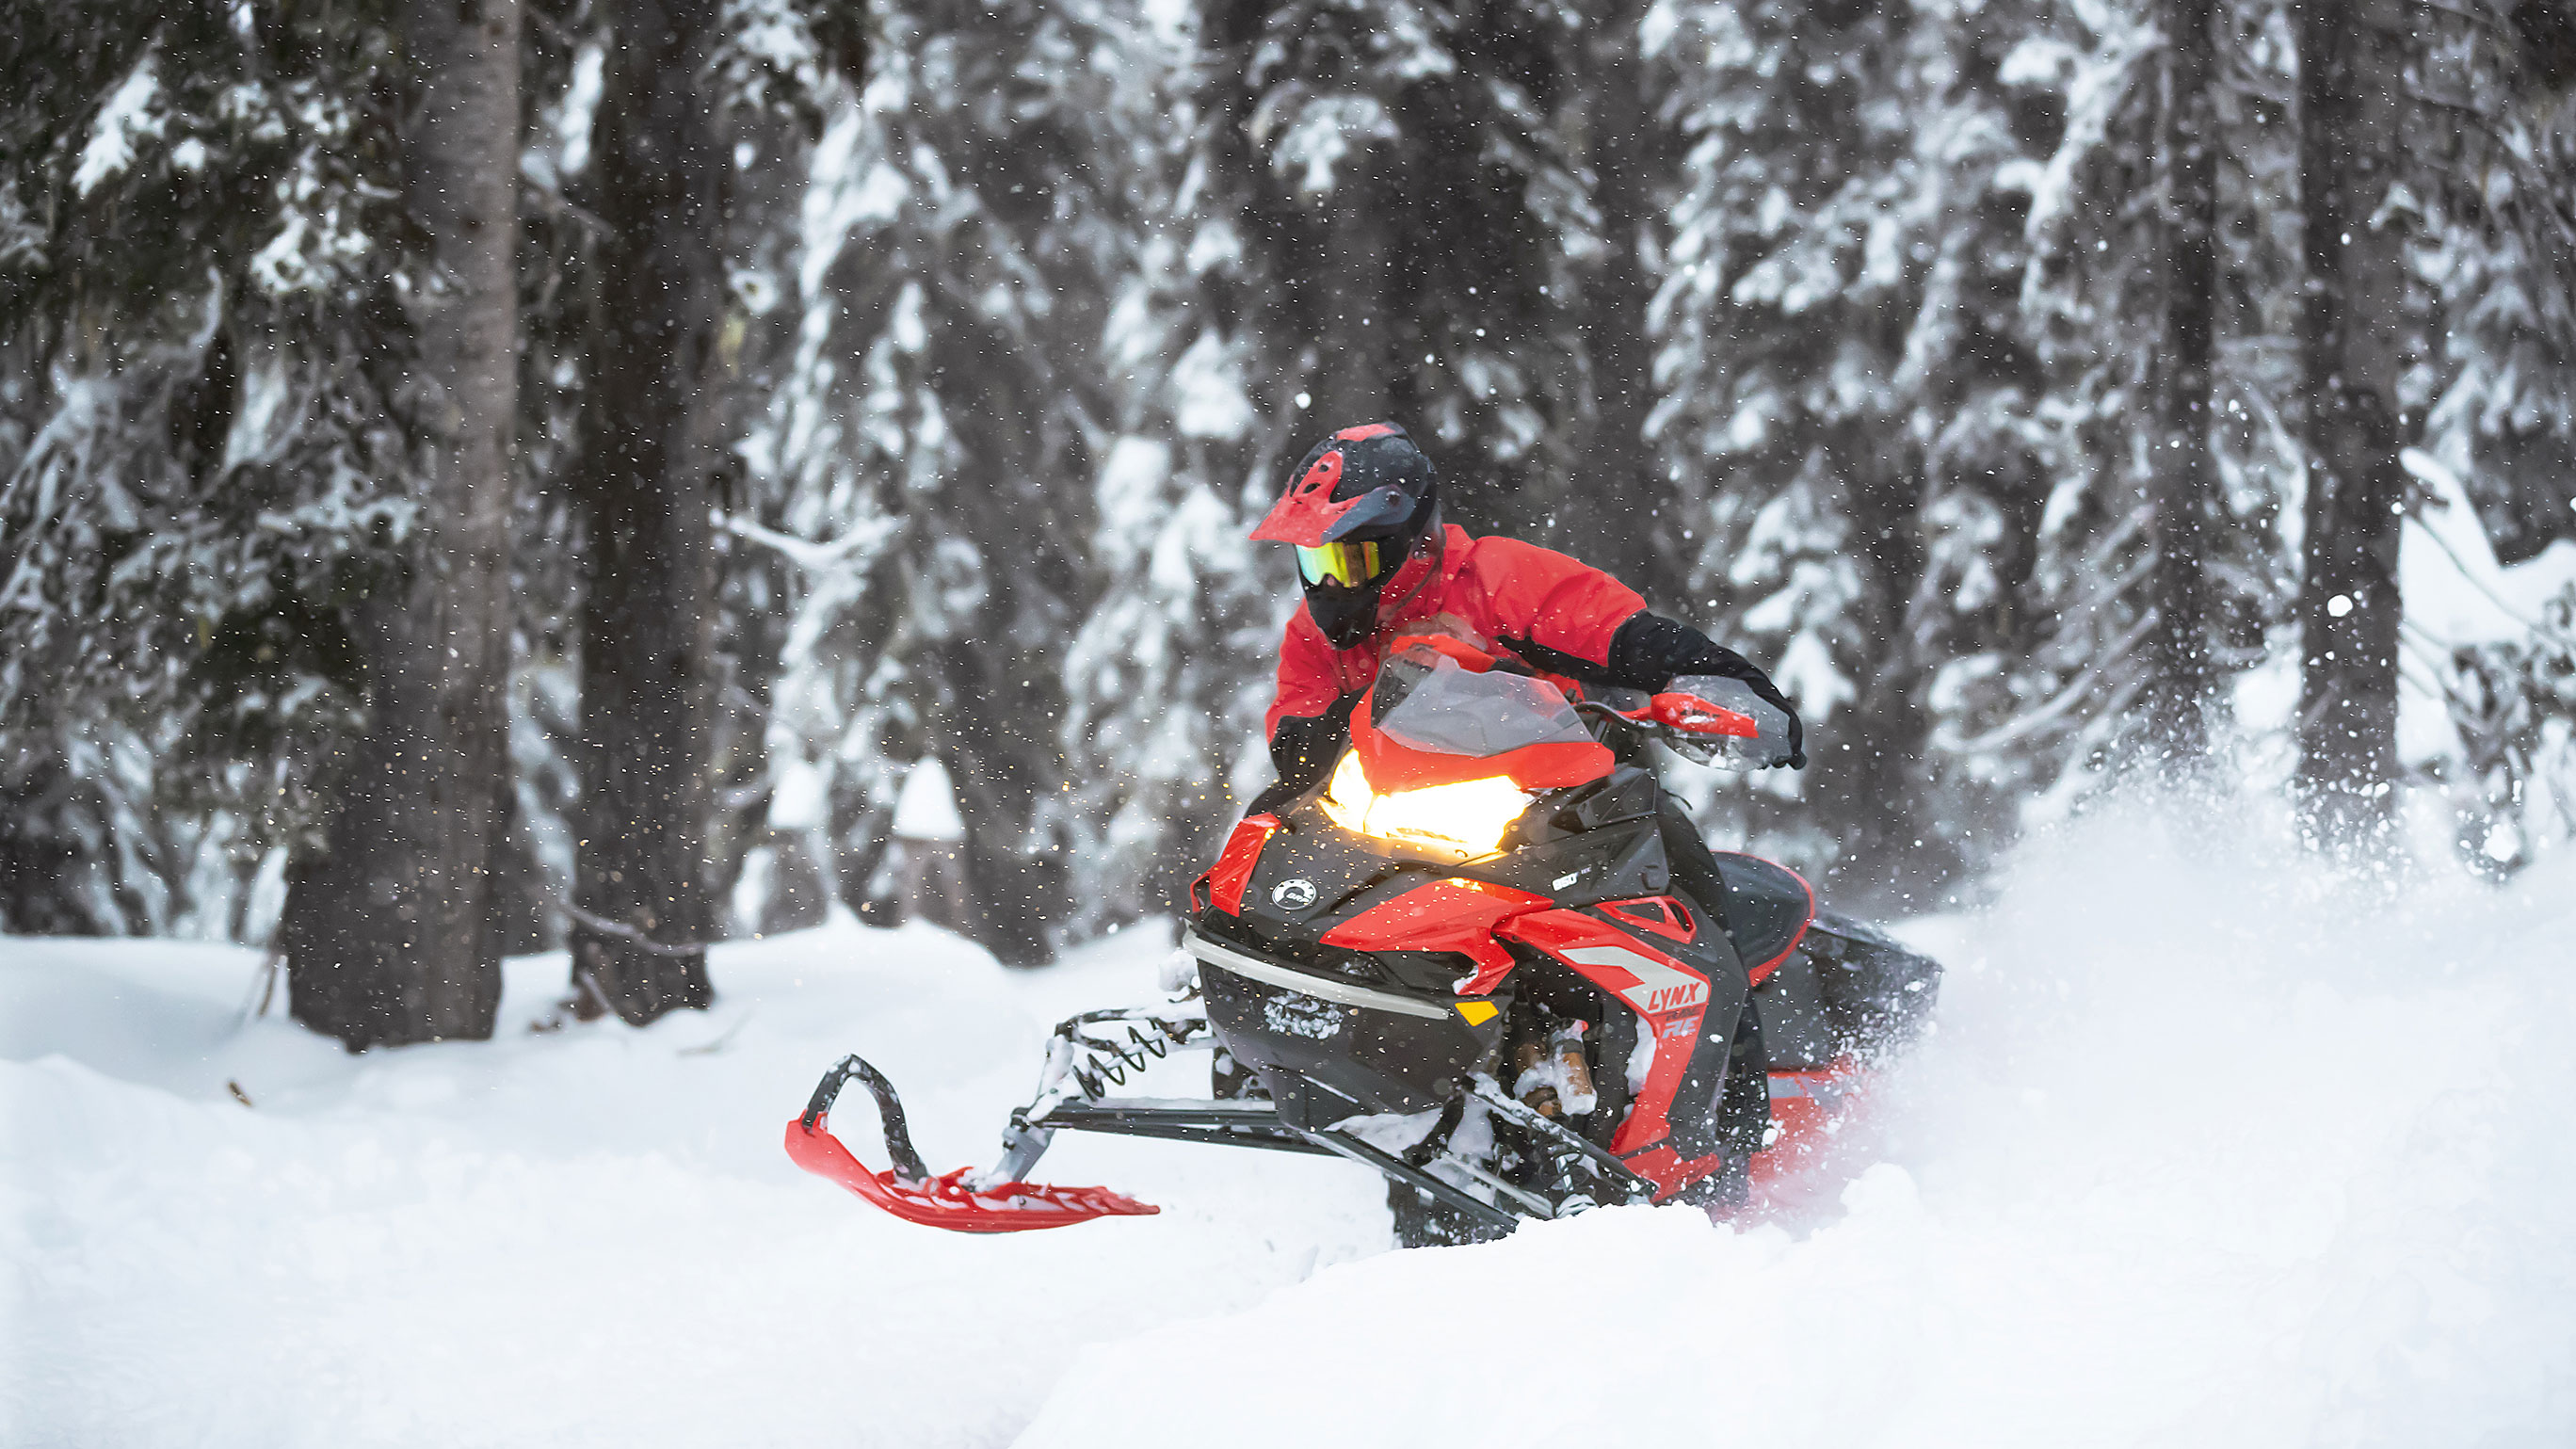 Lynx Rave RE snowmobile curving on a trail